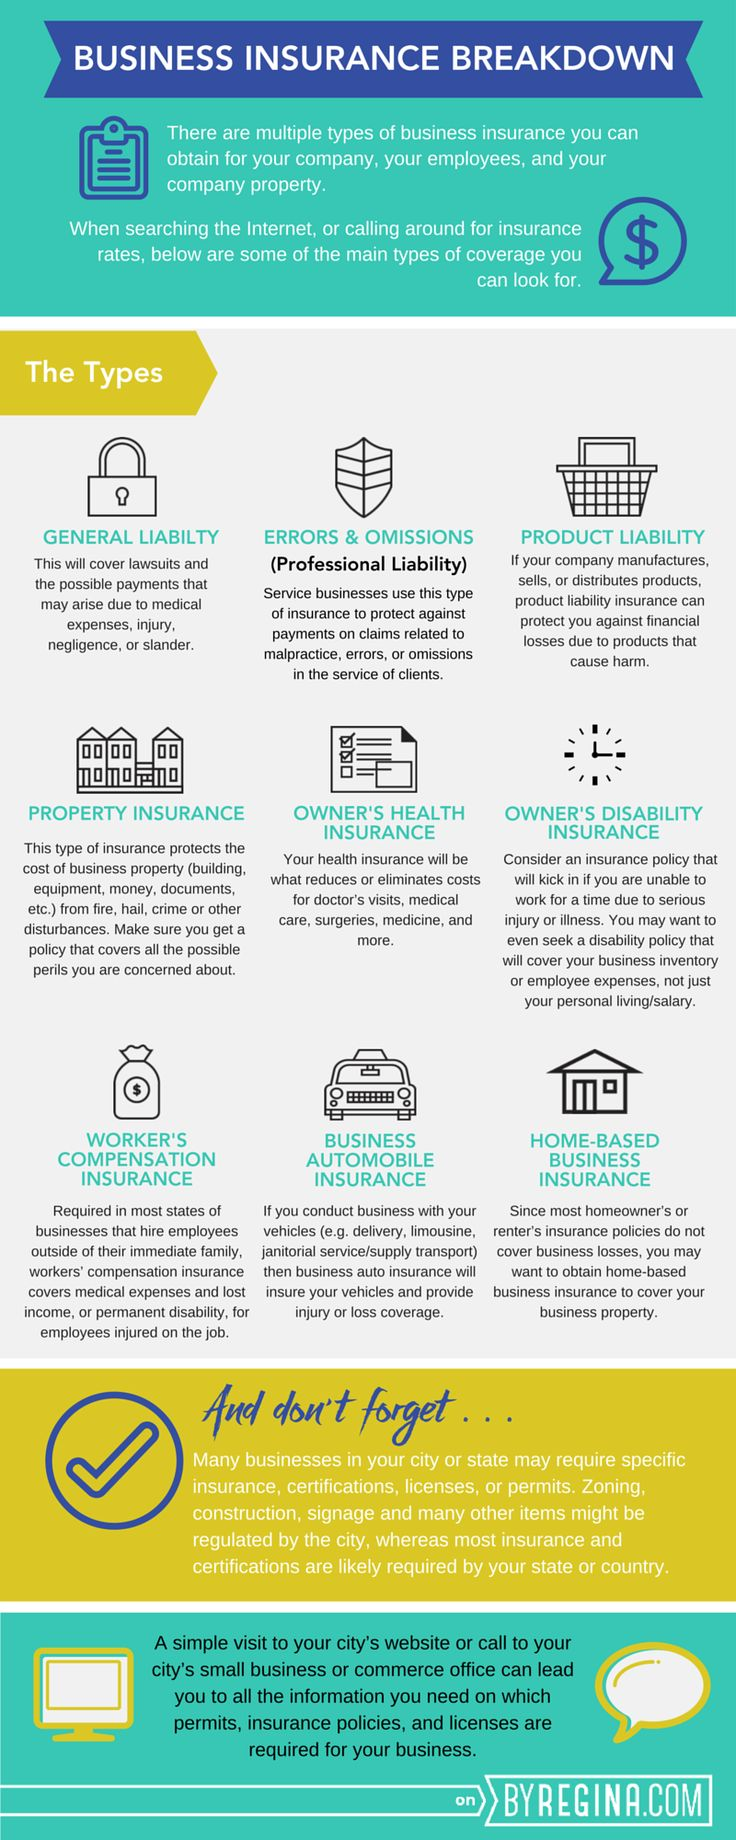 Here are some important types of insurance for you to consider for your #business. Have a big network of executives and HR managers? Introduce us to them and we will pay for your travel. Email me at carlos@recruitingforgood.com